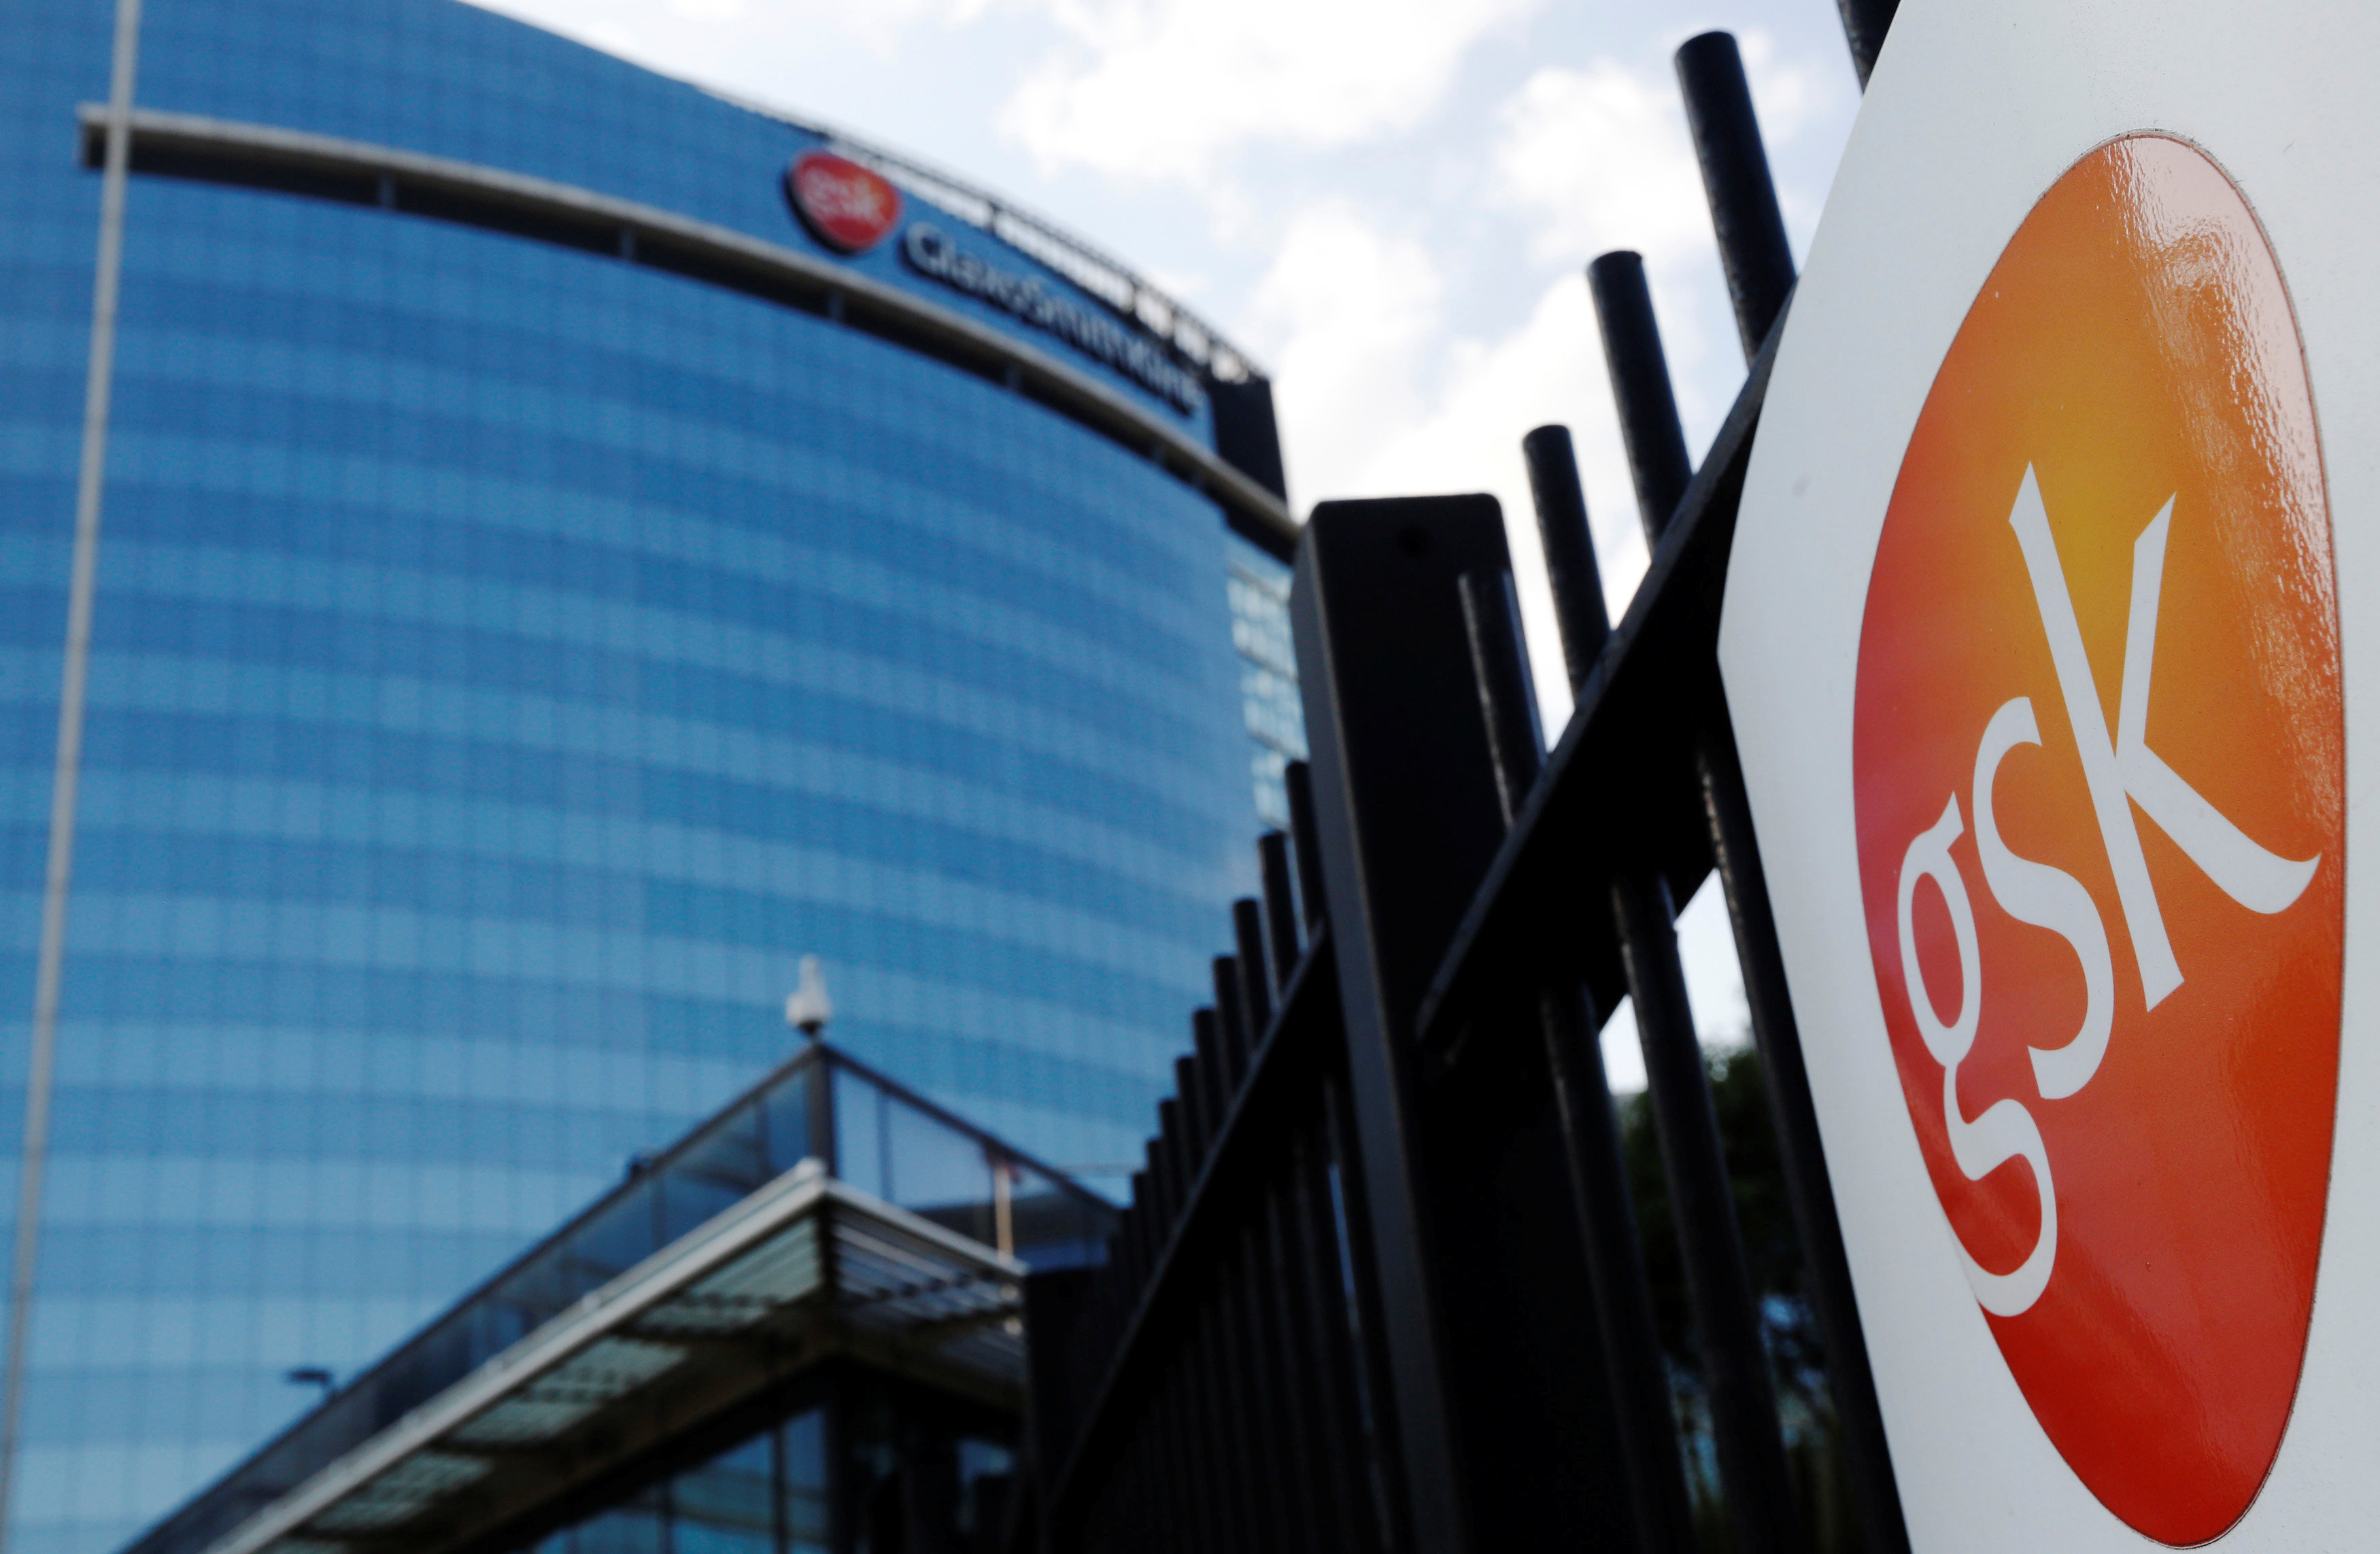 GSK, Pfizer to merge consumer healthcare units